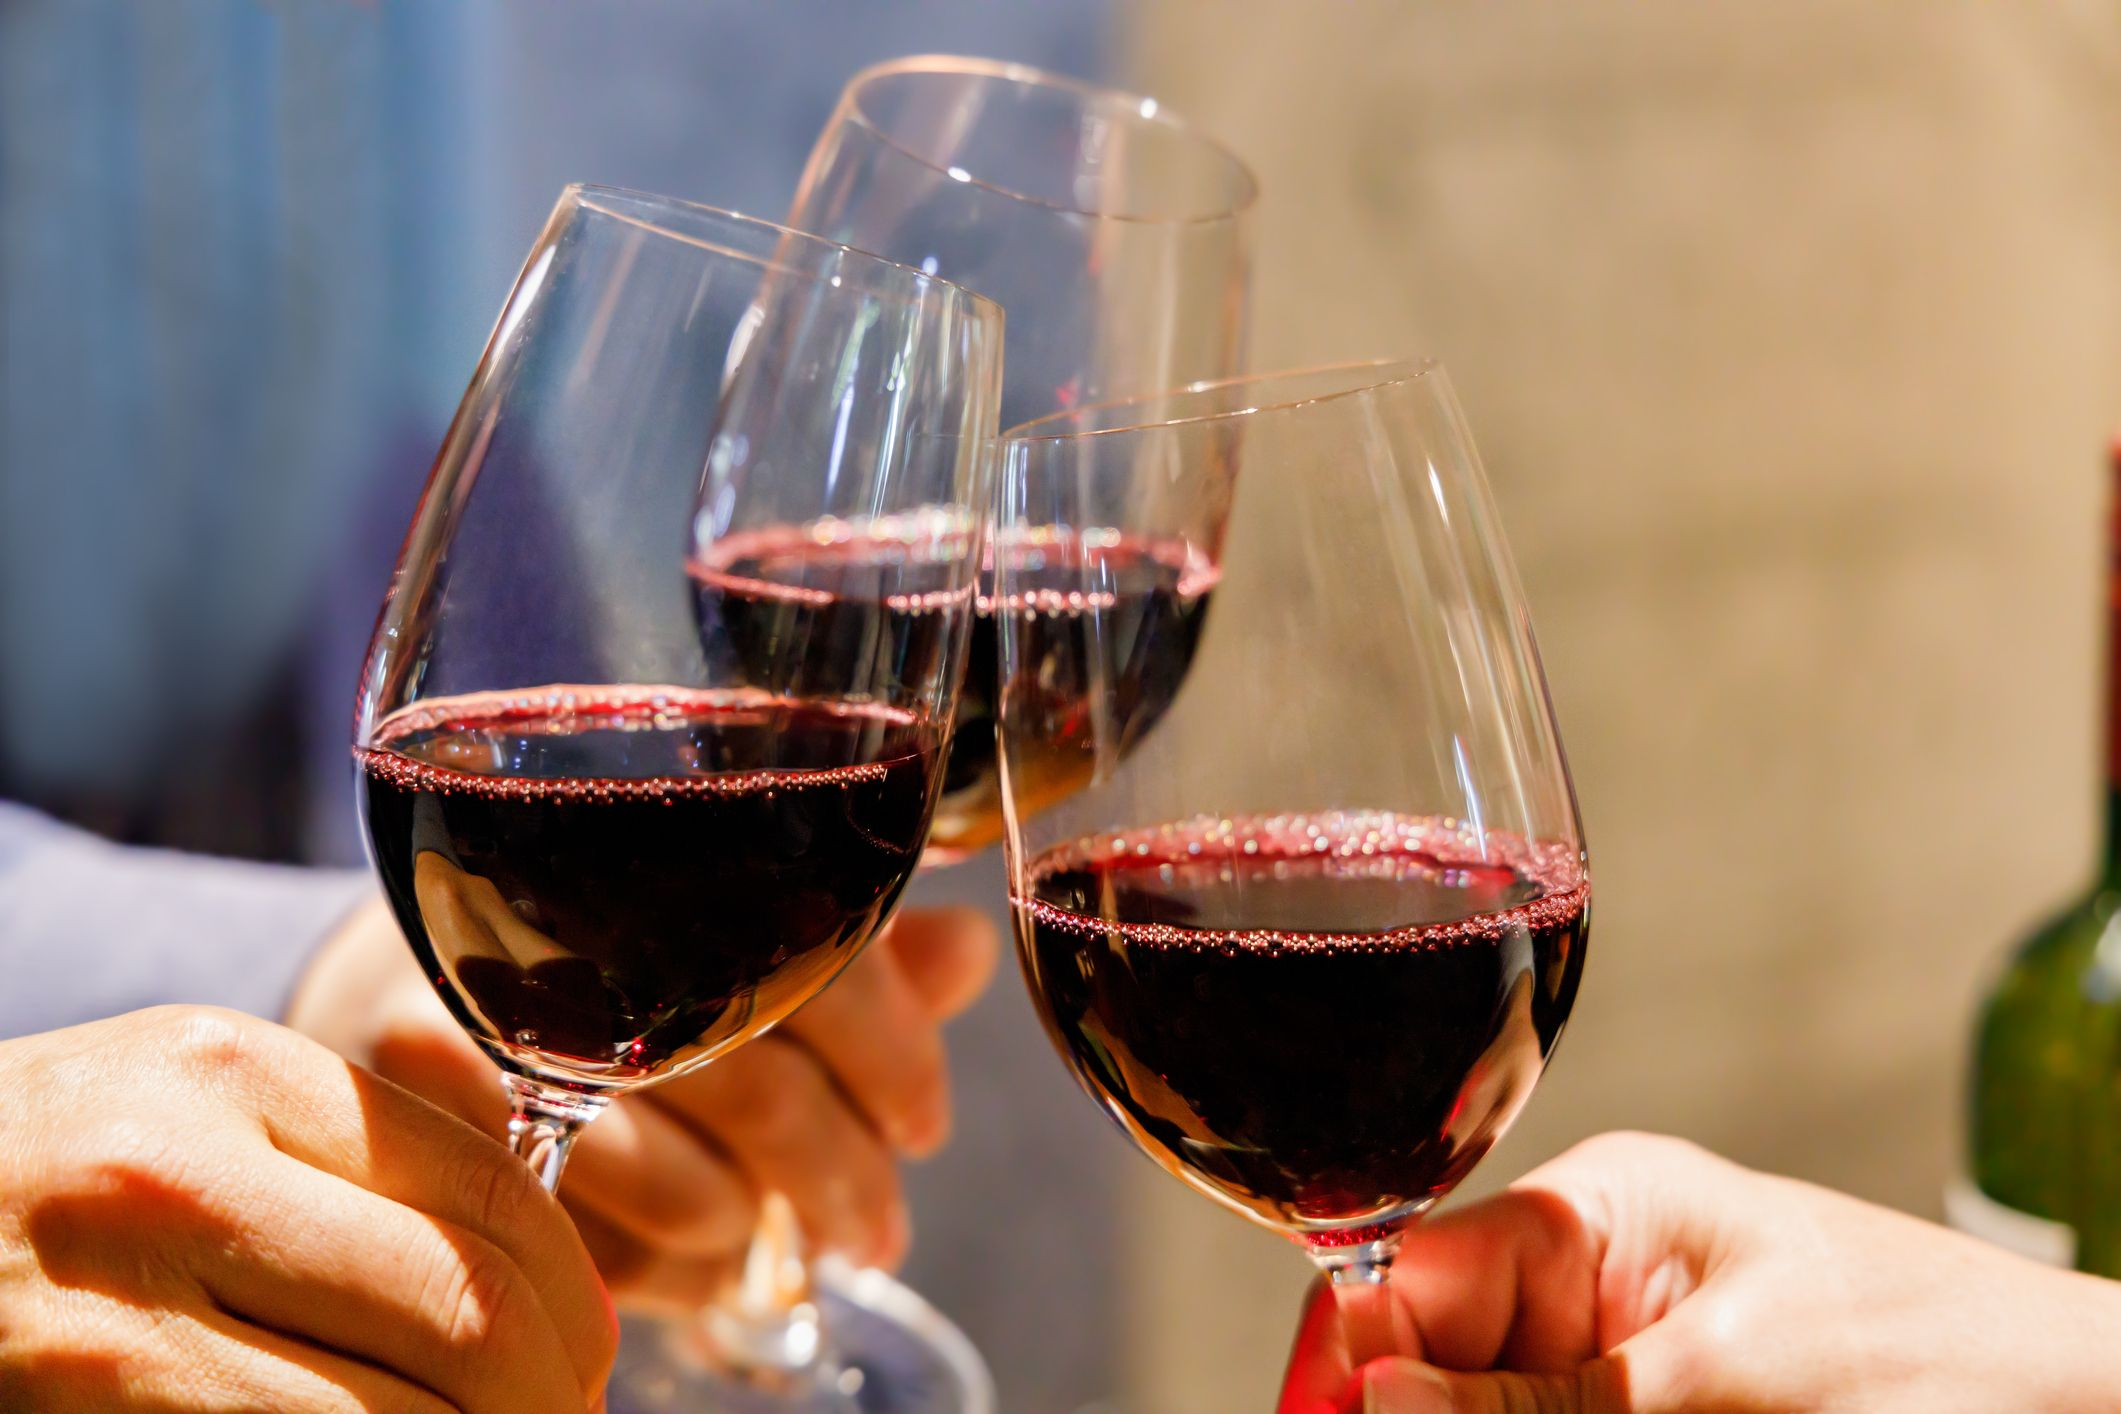 What Are Tannins In Red Wine?